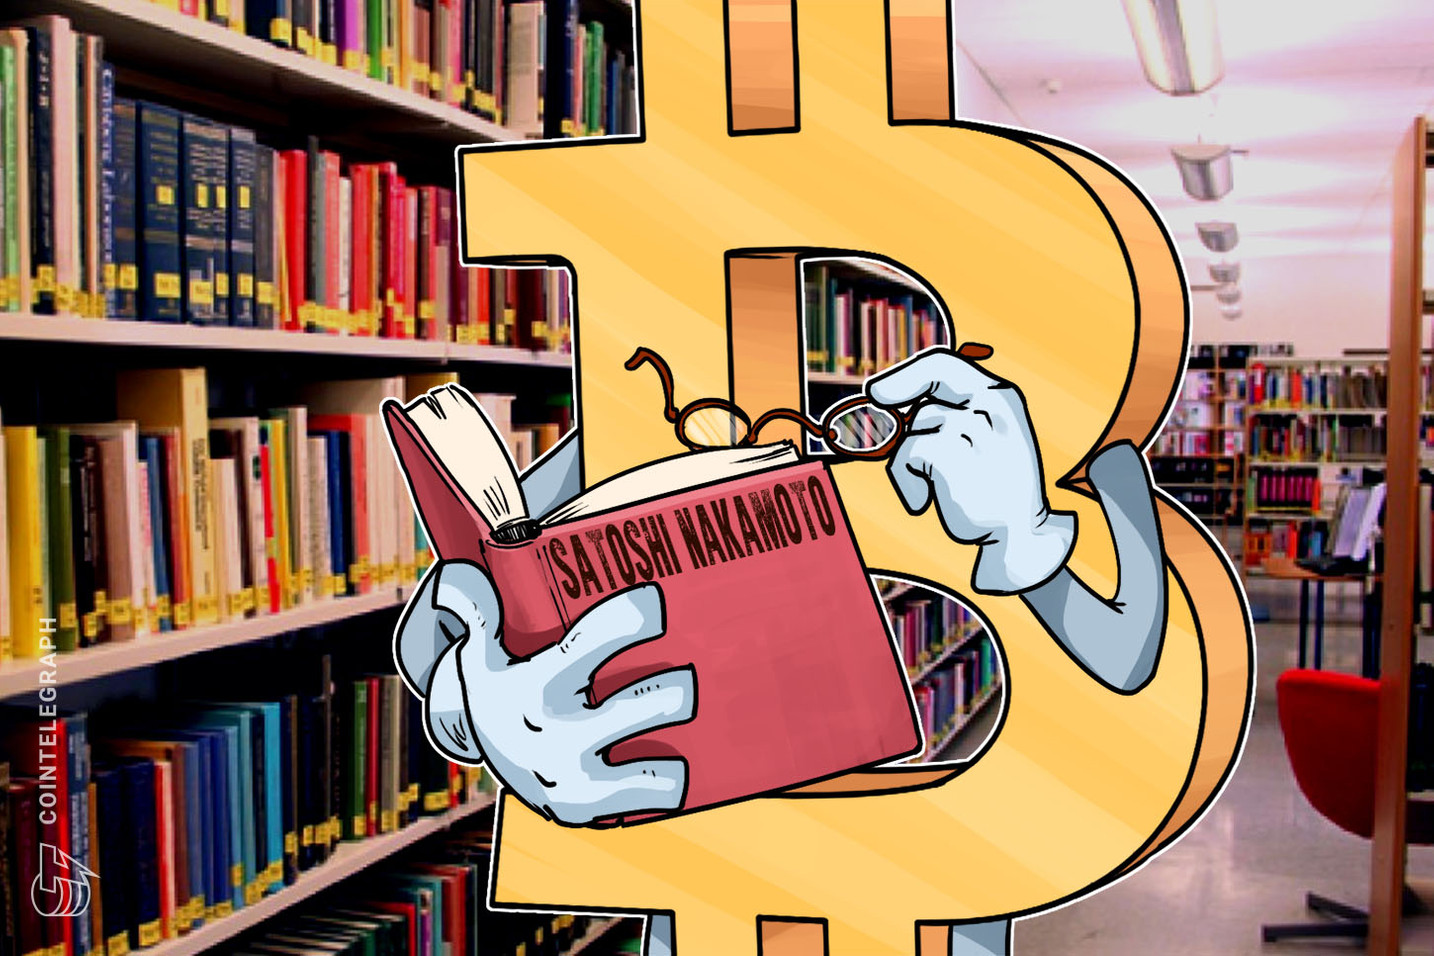 Satoshi Nakamoto Apparent Author of Two Upcoming Books on Amazon